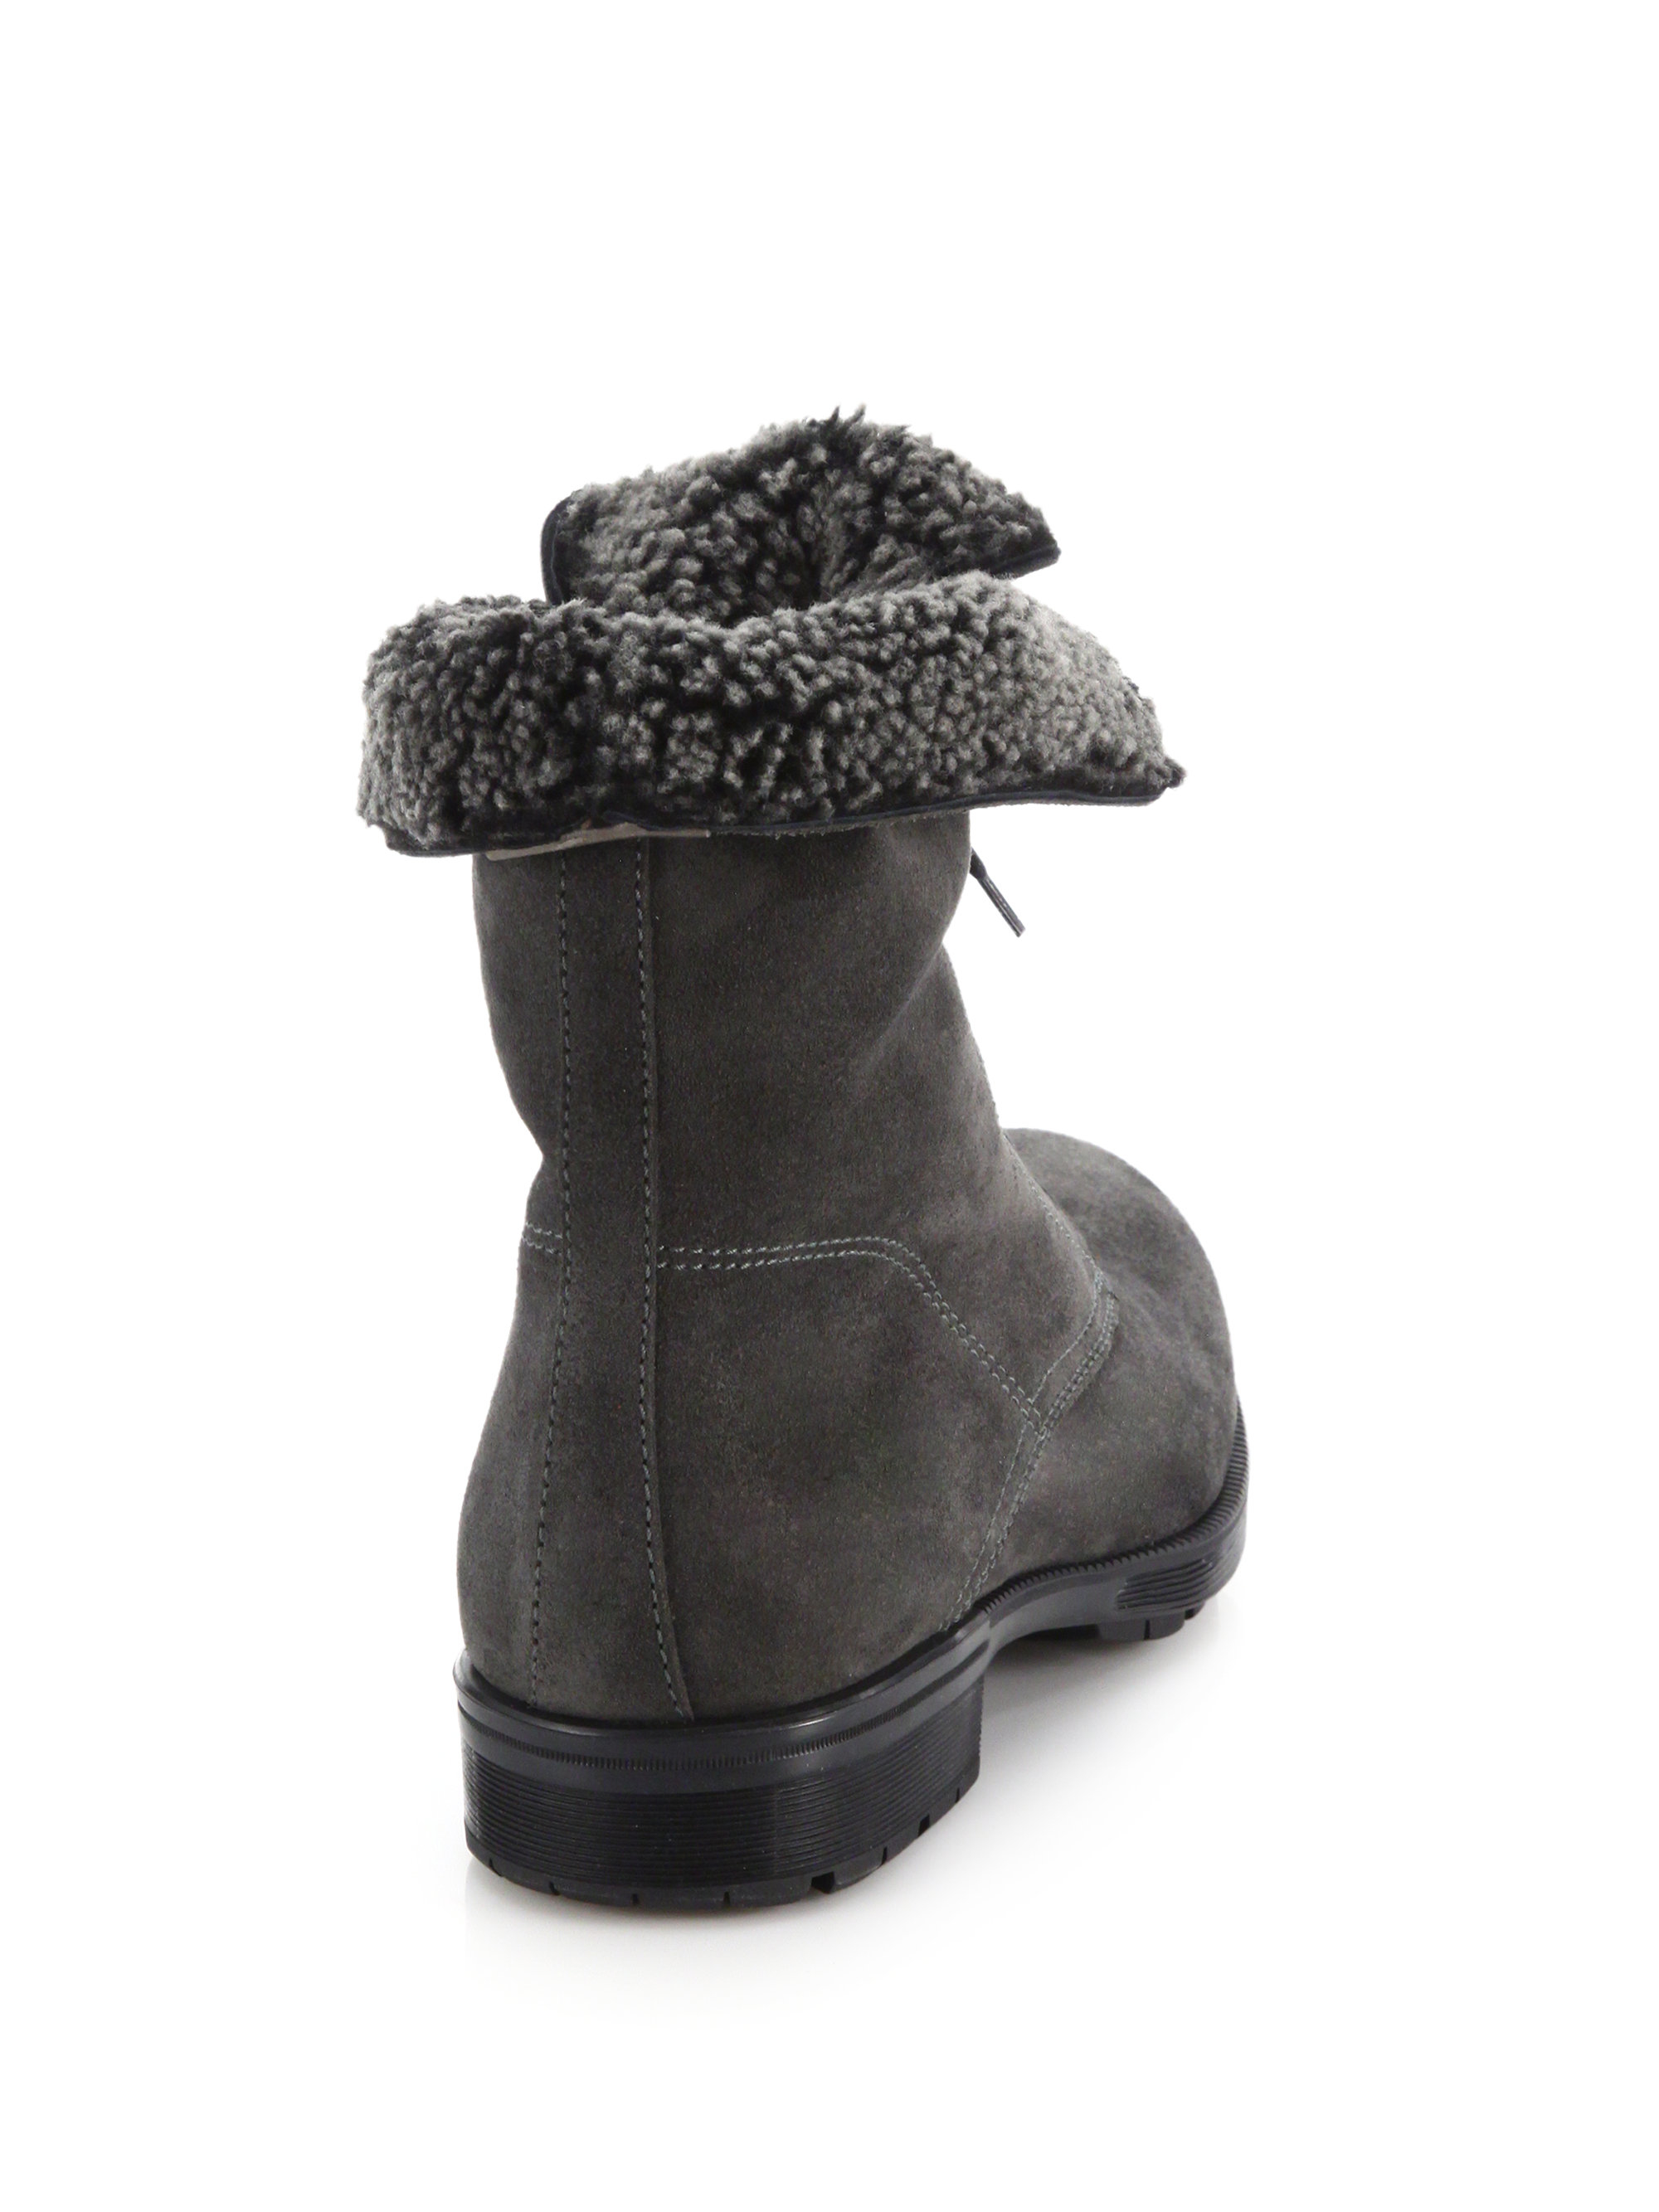 Aquatalia Hayden Shearling Lined Suede Lace Up Boots In